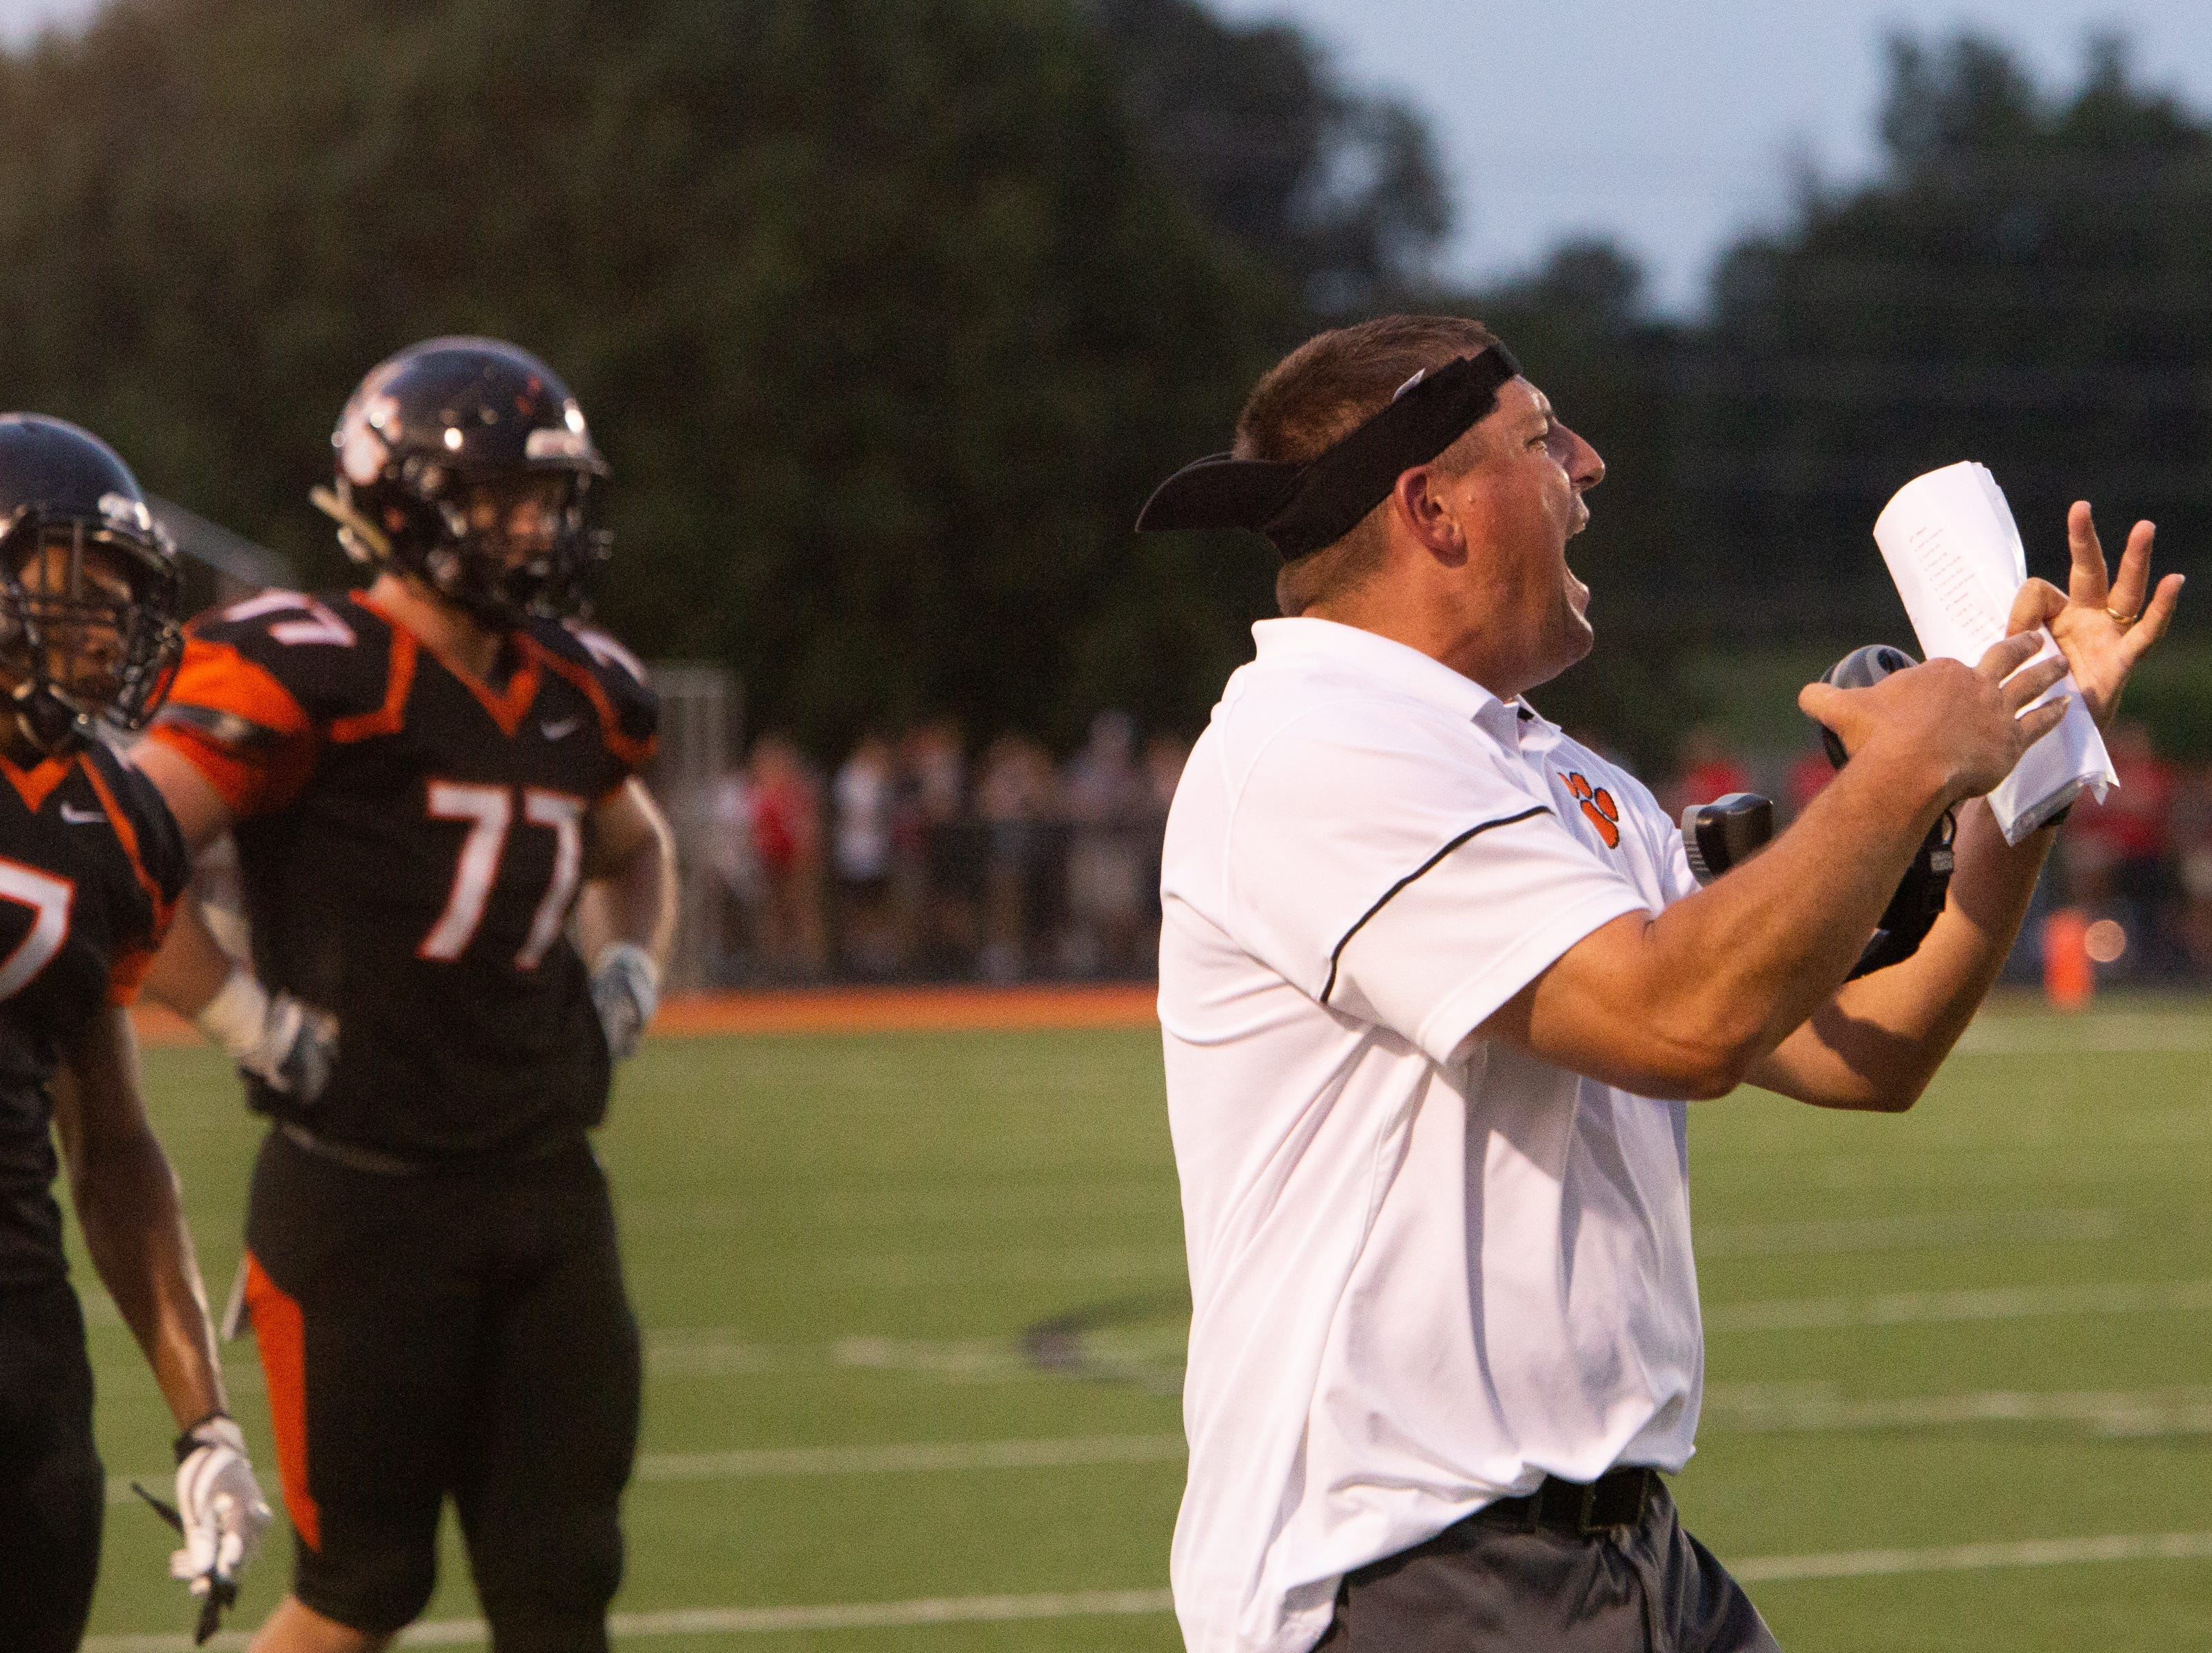 Powell head coach Matt Lowe calls a timeout during the Powell versus Halls football game at Powell High School Friday, Aug. 17, 2018.